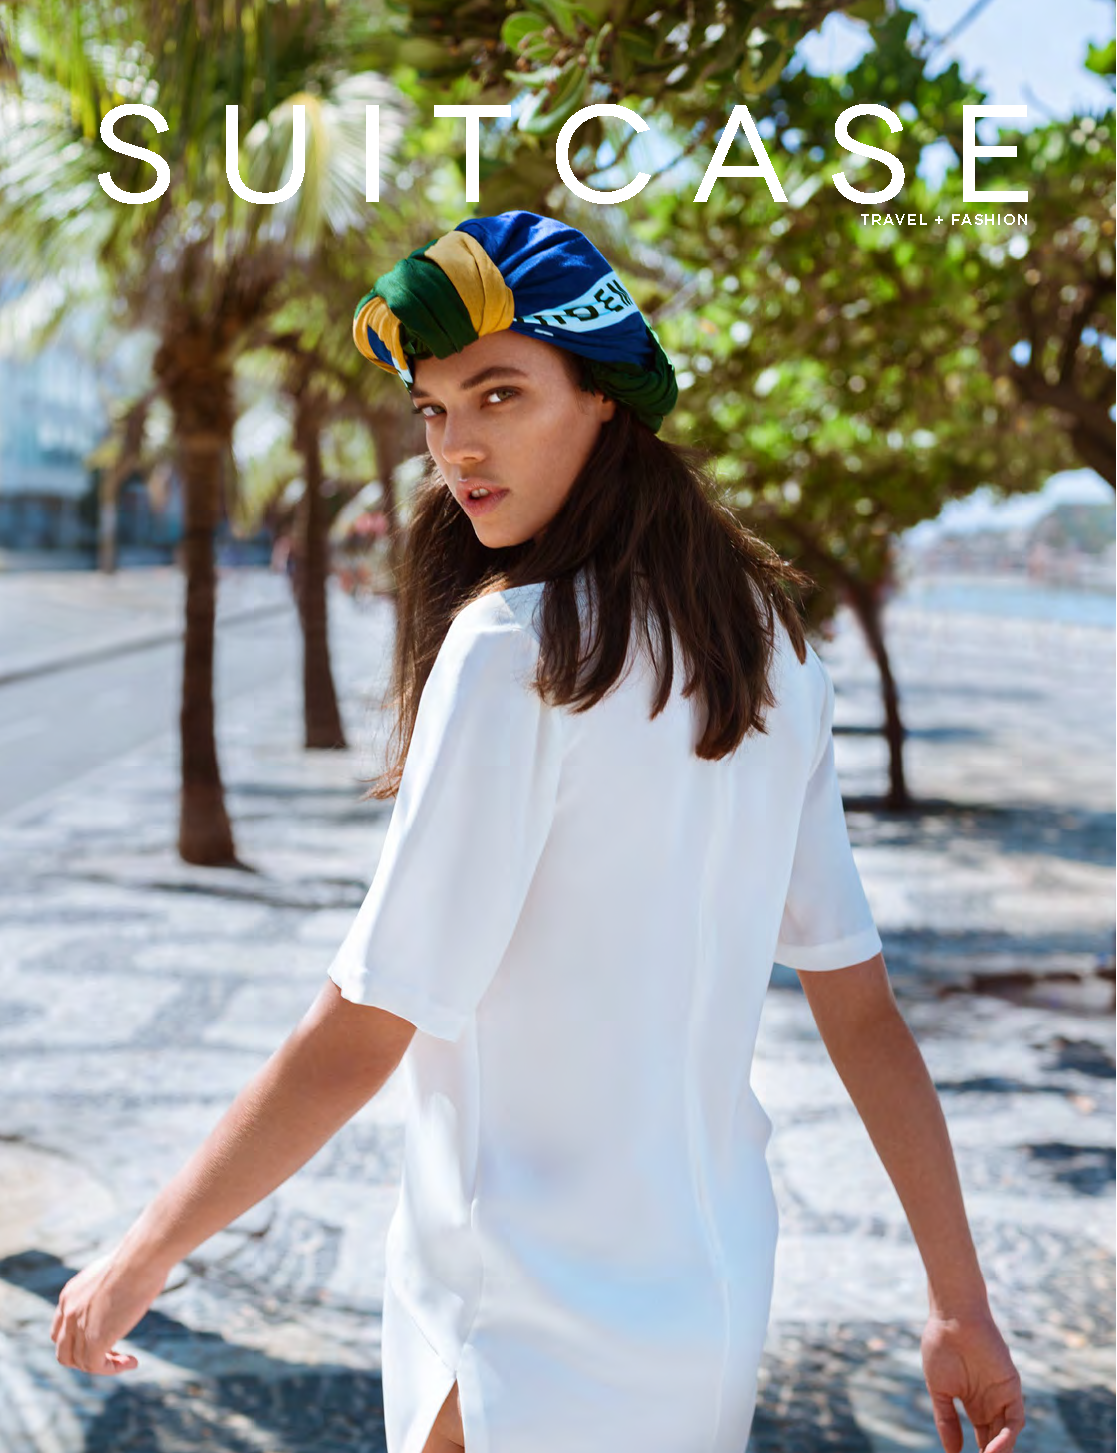 Summer bronzing trends in Suitcase magazine. Photographer Michelle Beatty. Hair by Jason Crozier of CrozNest in residence at No74 Hair & Beauty and make-up by Camilla Hewitt.